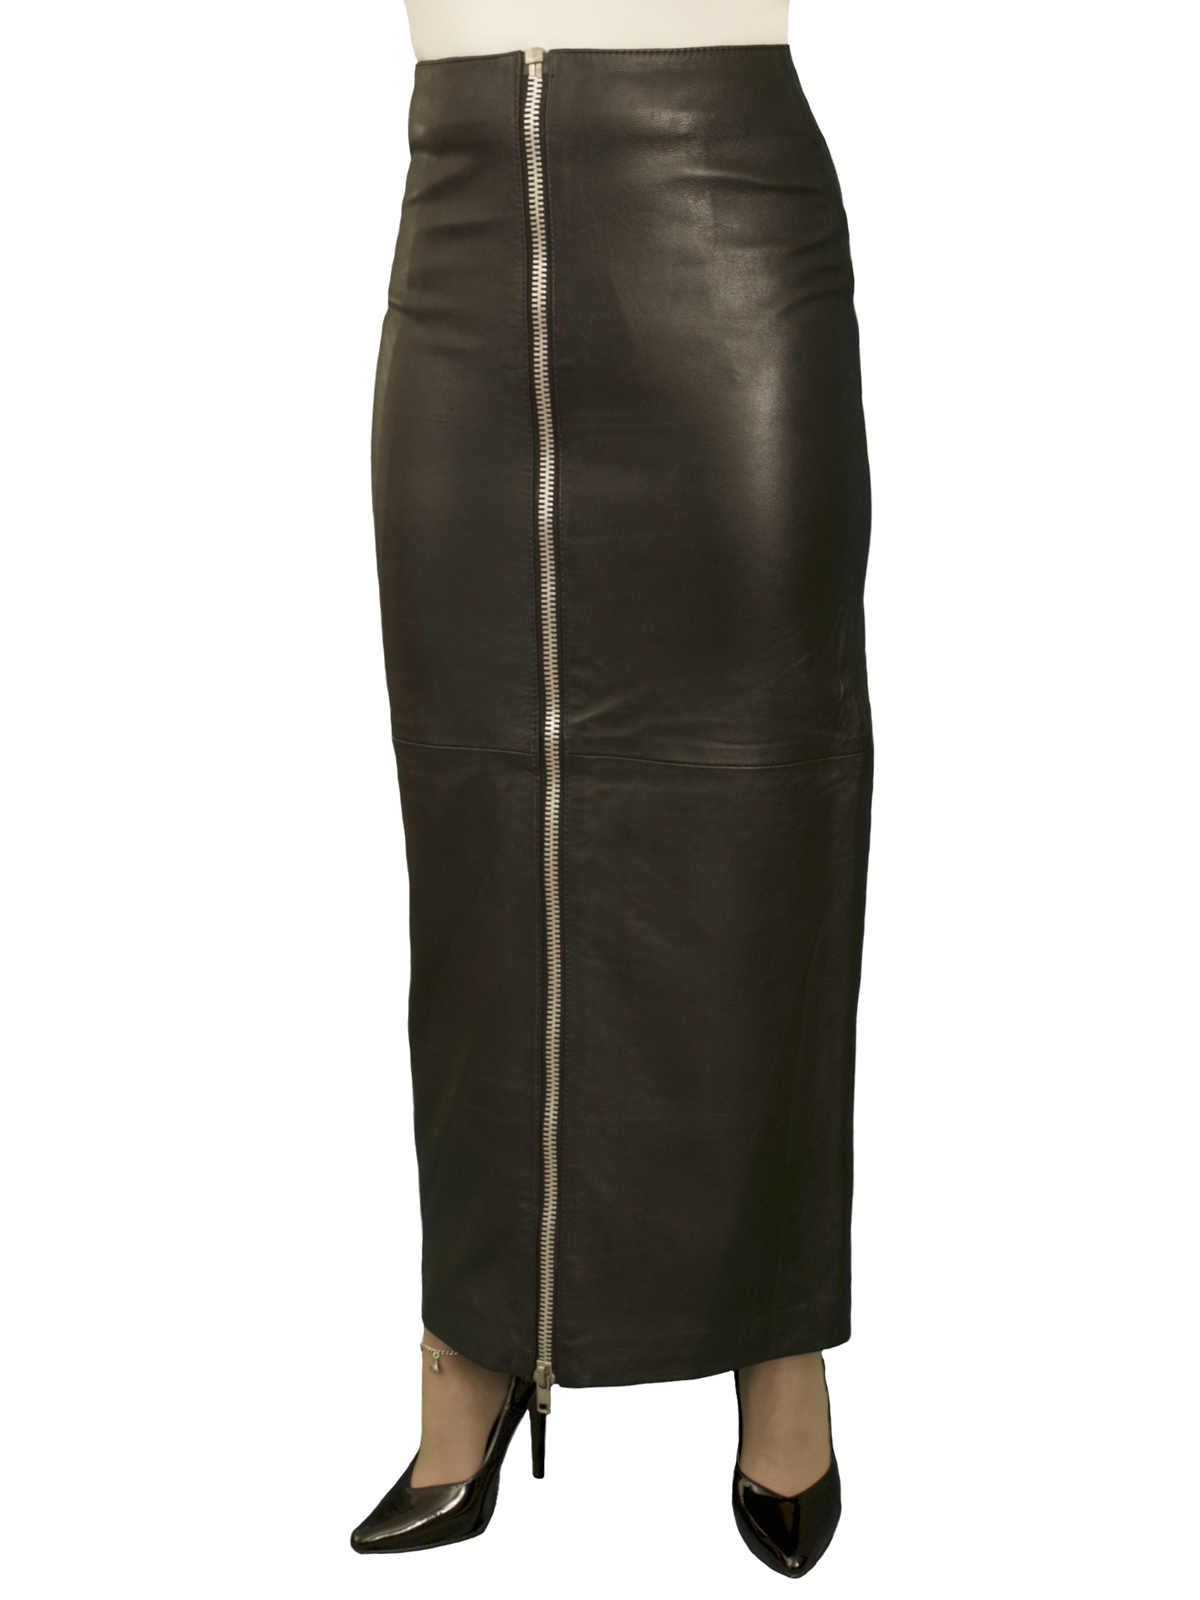 Black Leather Maxi Skirt with full front zip, luxury soft